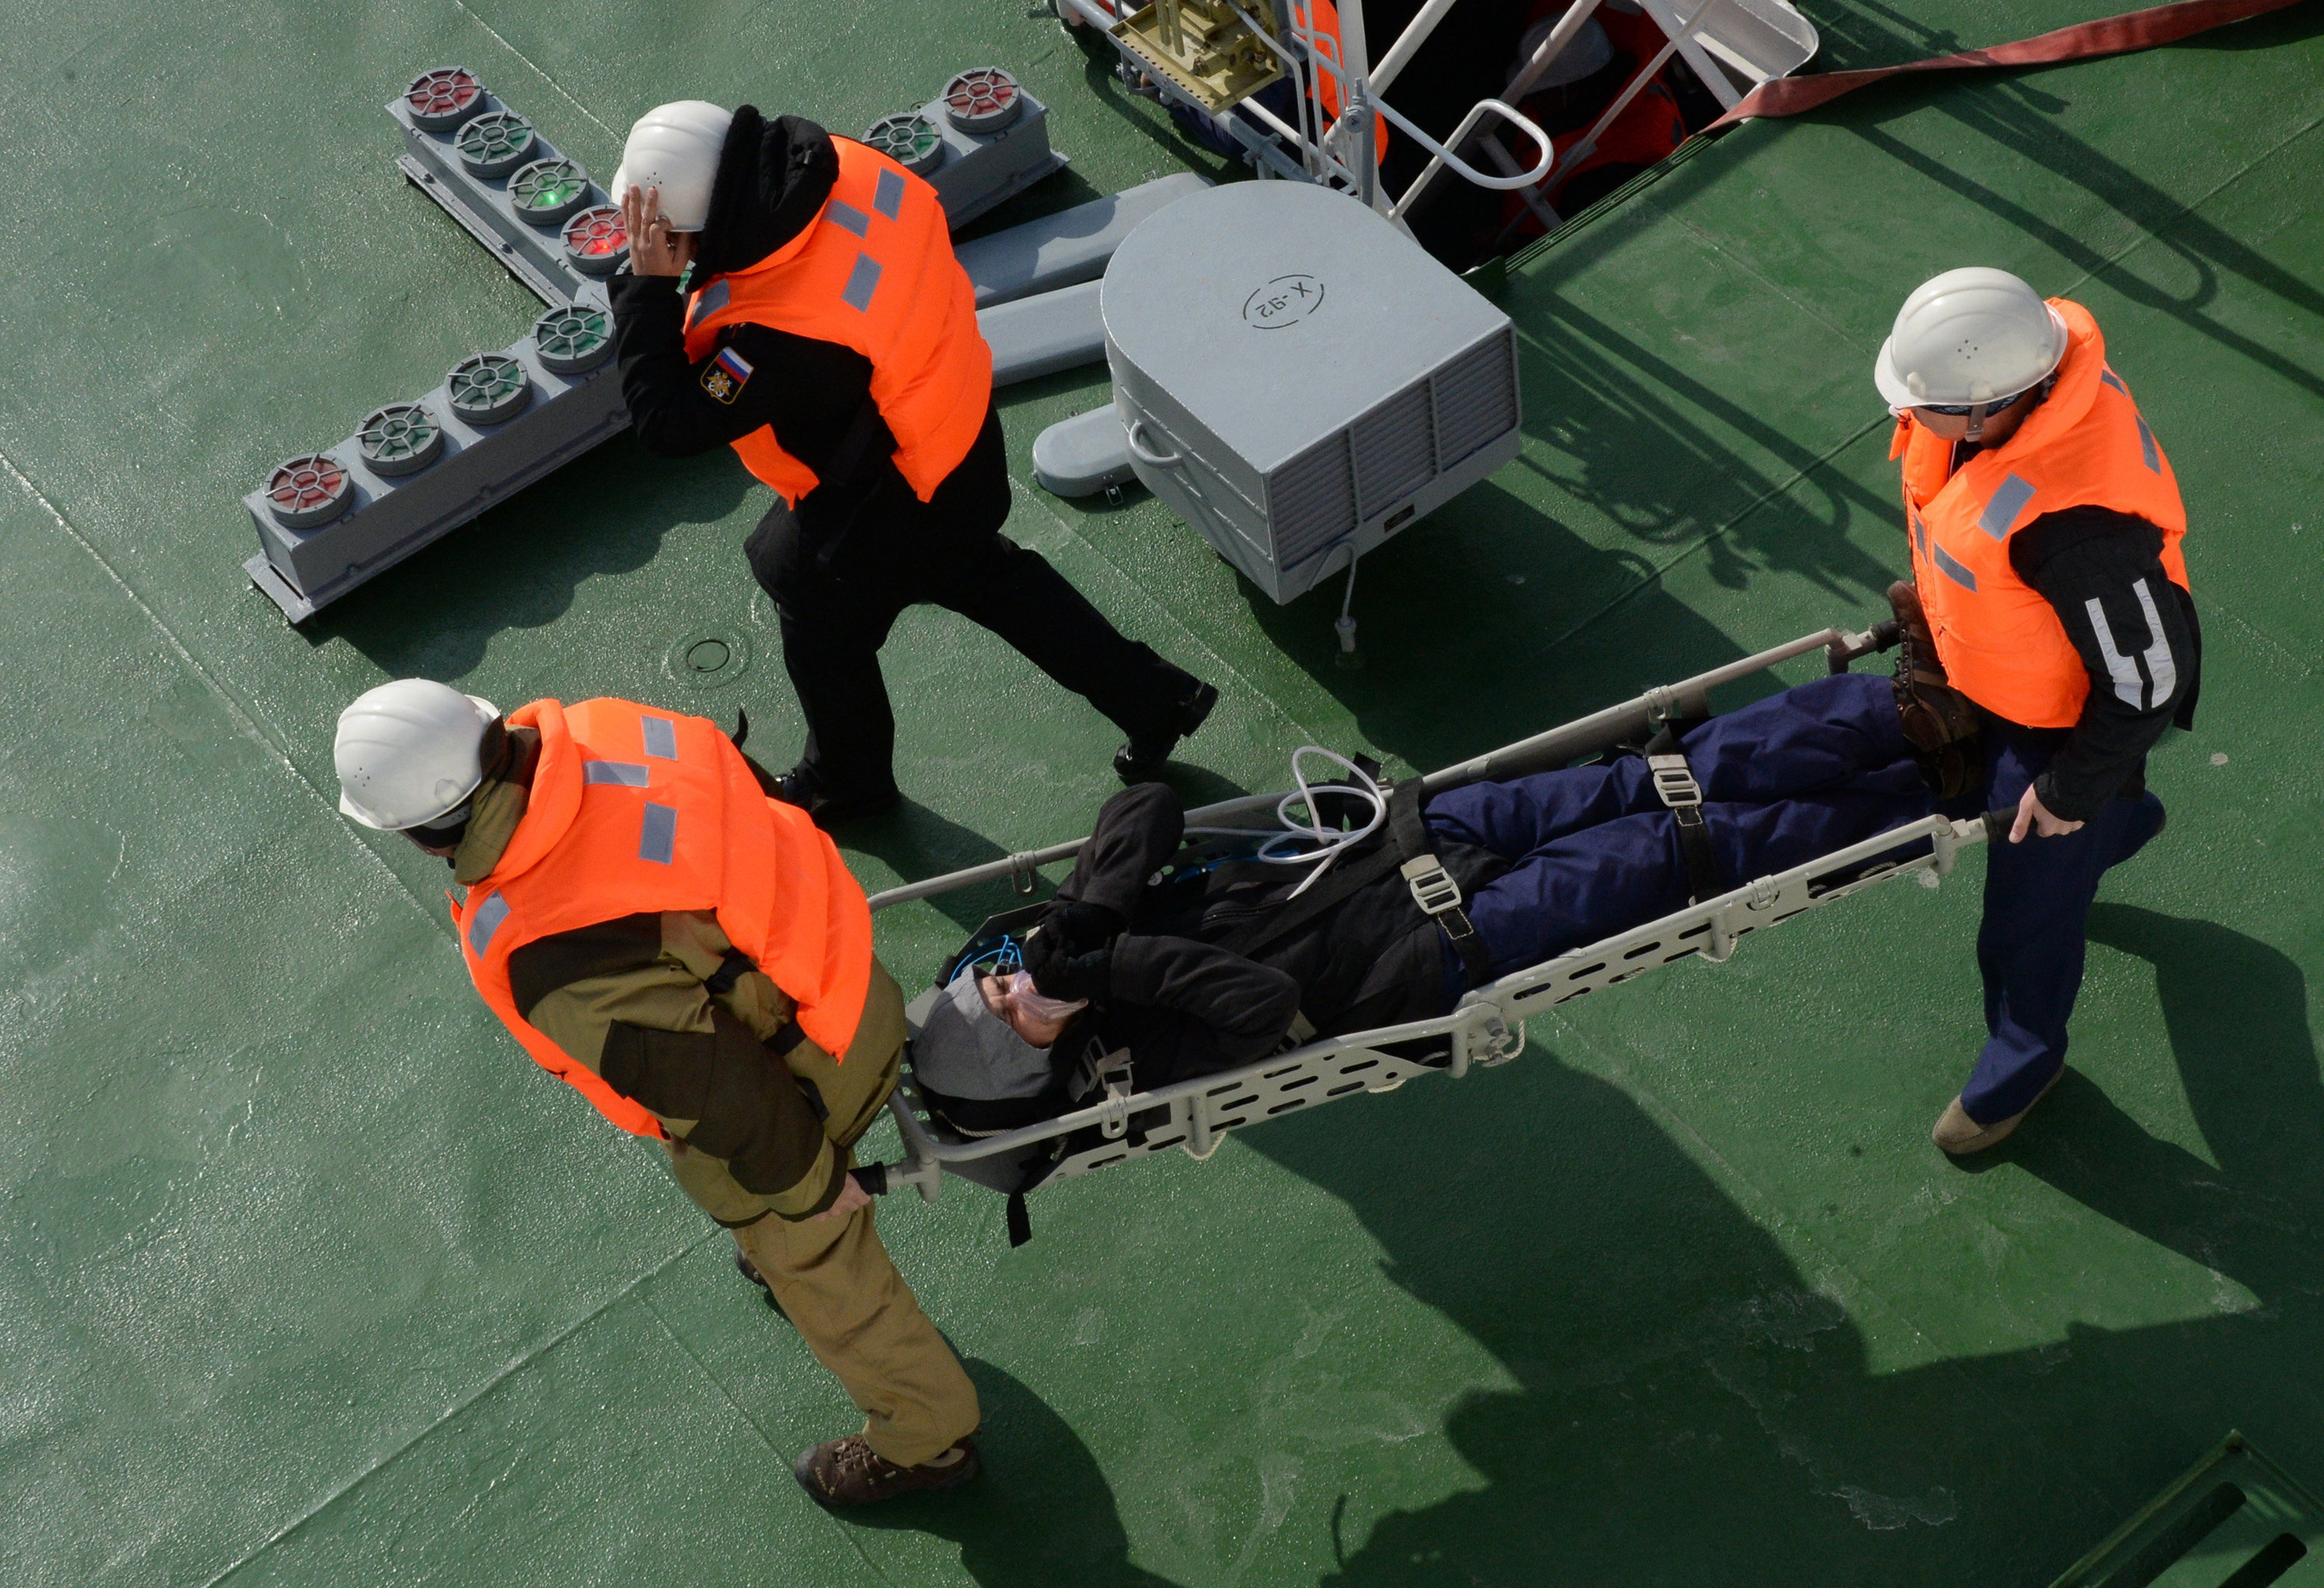 Transporting a submariner from the board of the Igor Belousov vessel during a submarine crew rescue drill by the sea rescue service of the Pacific Fleet in the Peter the Great Gulf